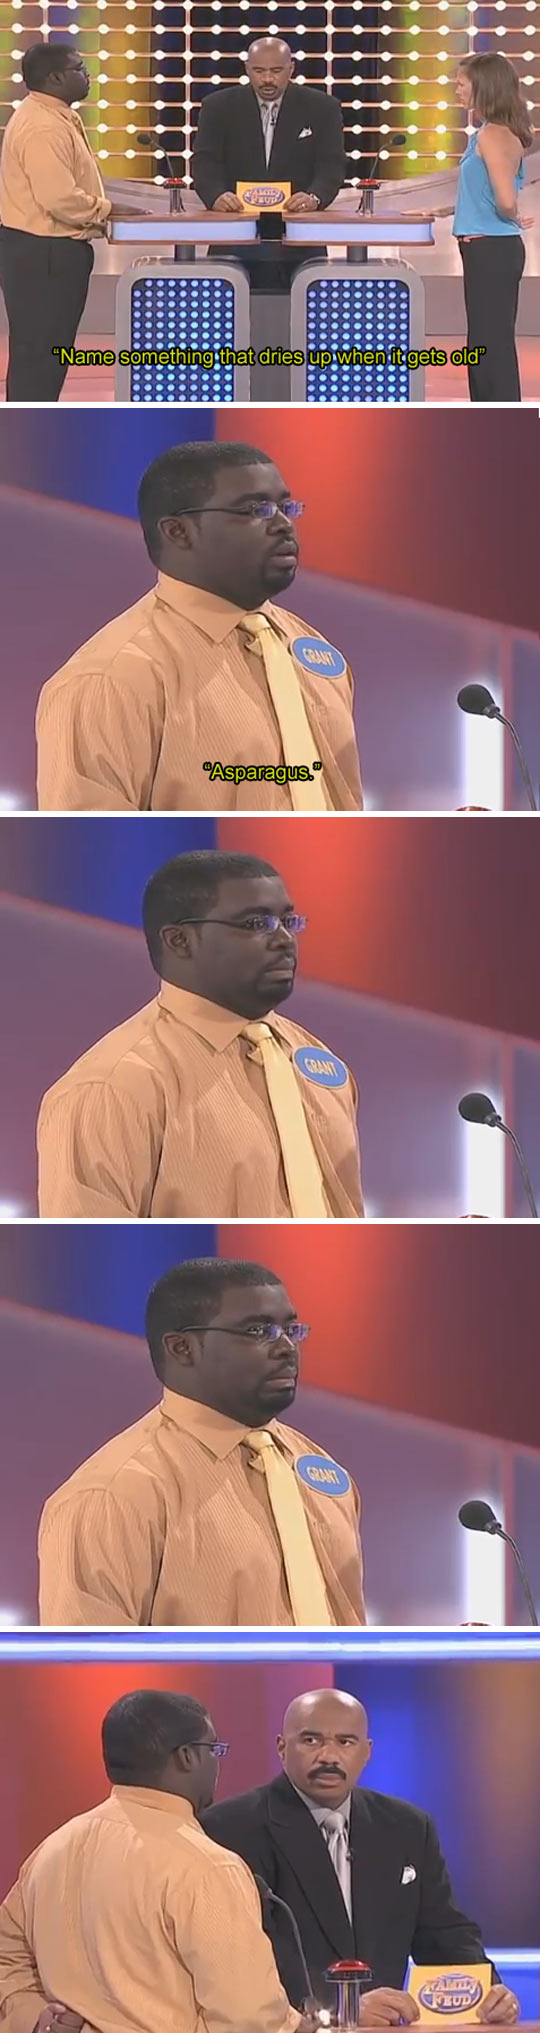 funny-Family-Feud-question-show